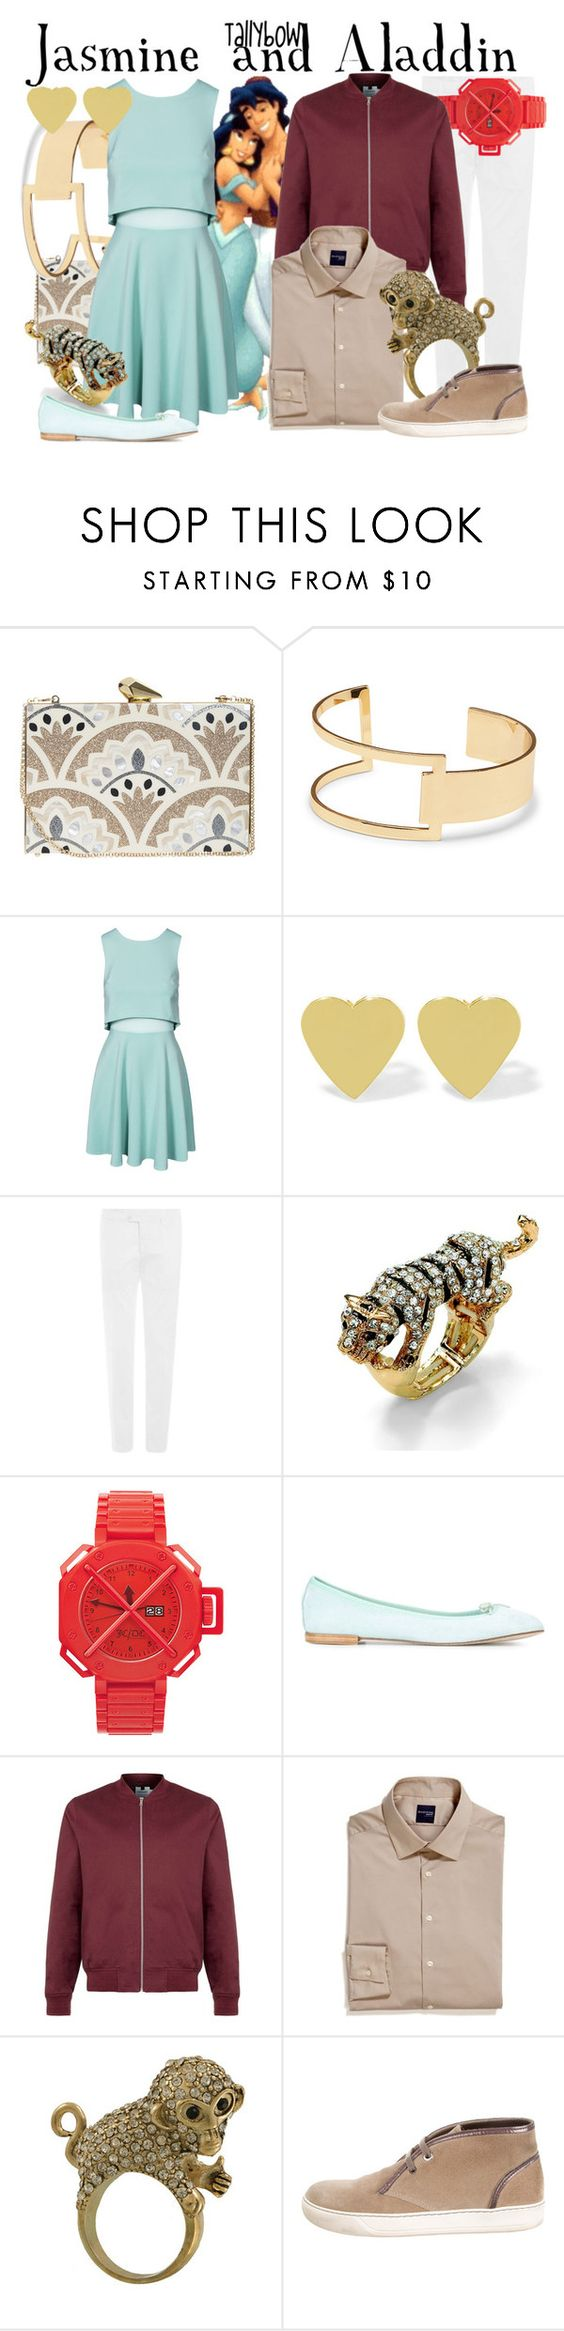 """""""Jasmine and Aladdin"""" by tallybow ❤ liked on Polyvore featuring KOTUR, Sole Society, John Zack, Jennifer Meyer Jewelry, Etro, Palm Beach Jewelry, Repetto, Topman, Madison and Miso"""